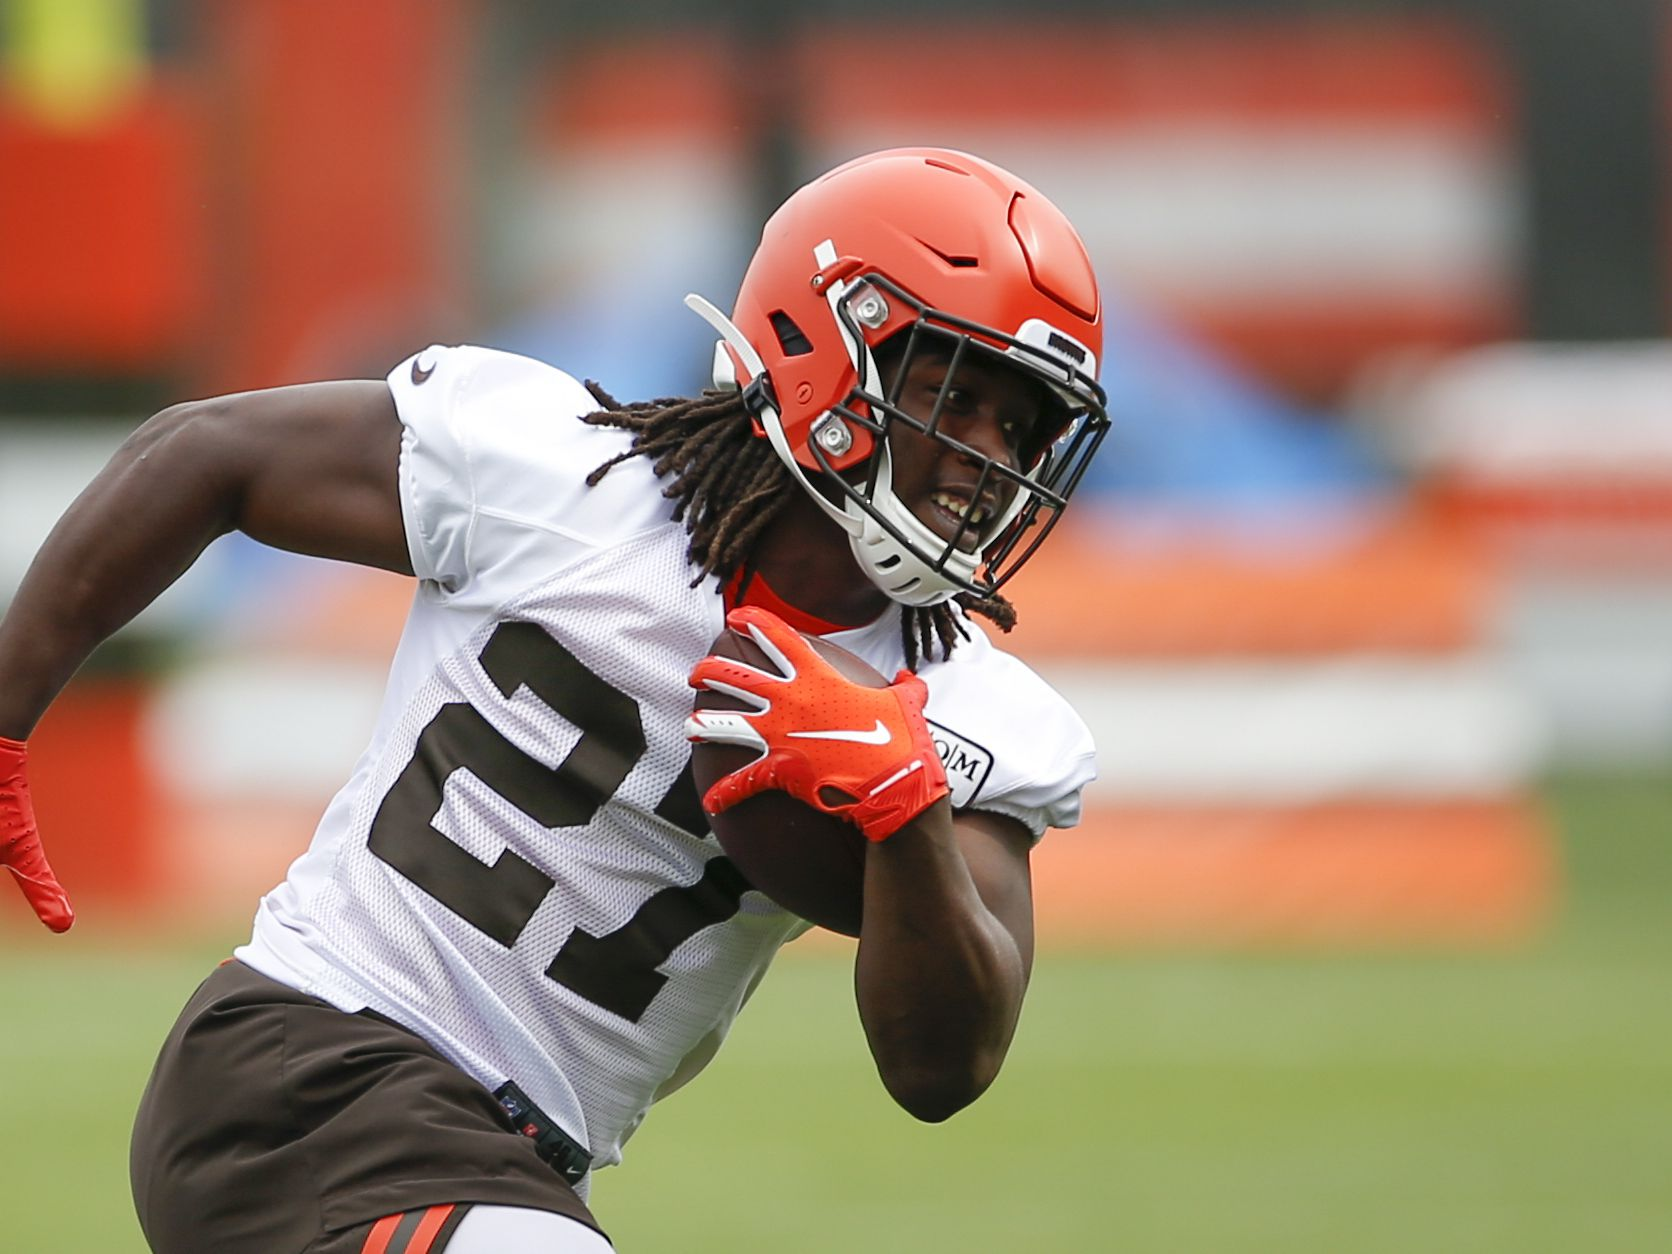 Browns speak with suspended RB Hunt after argument near bar